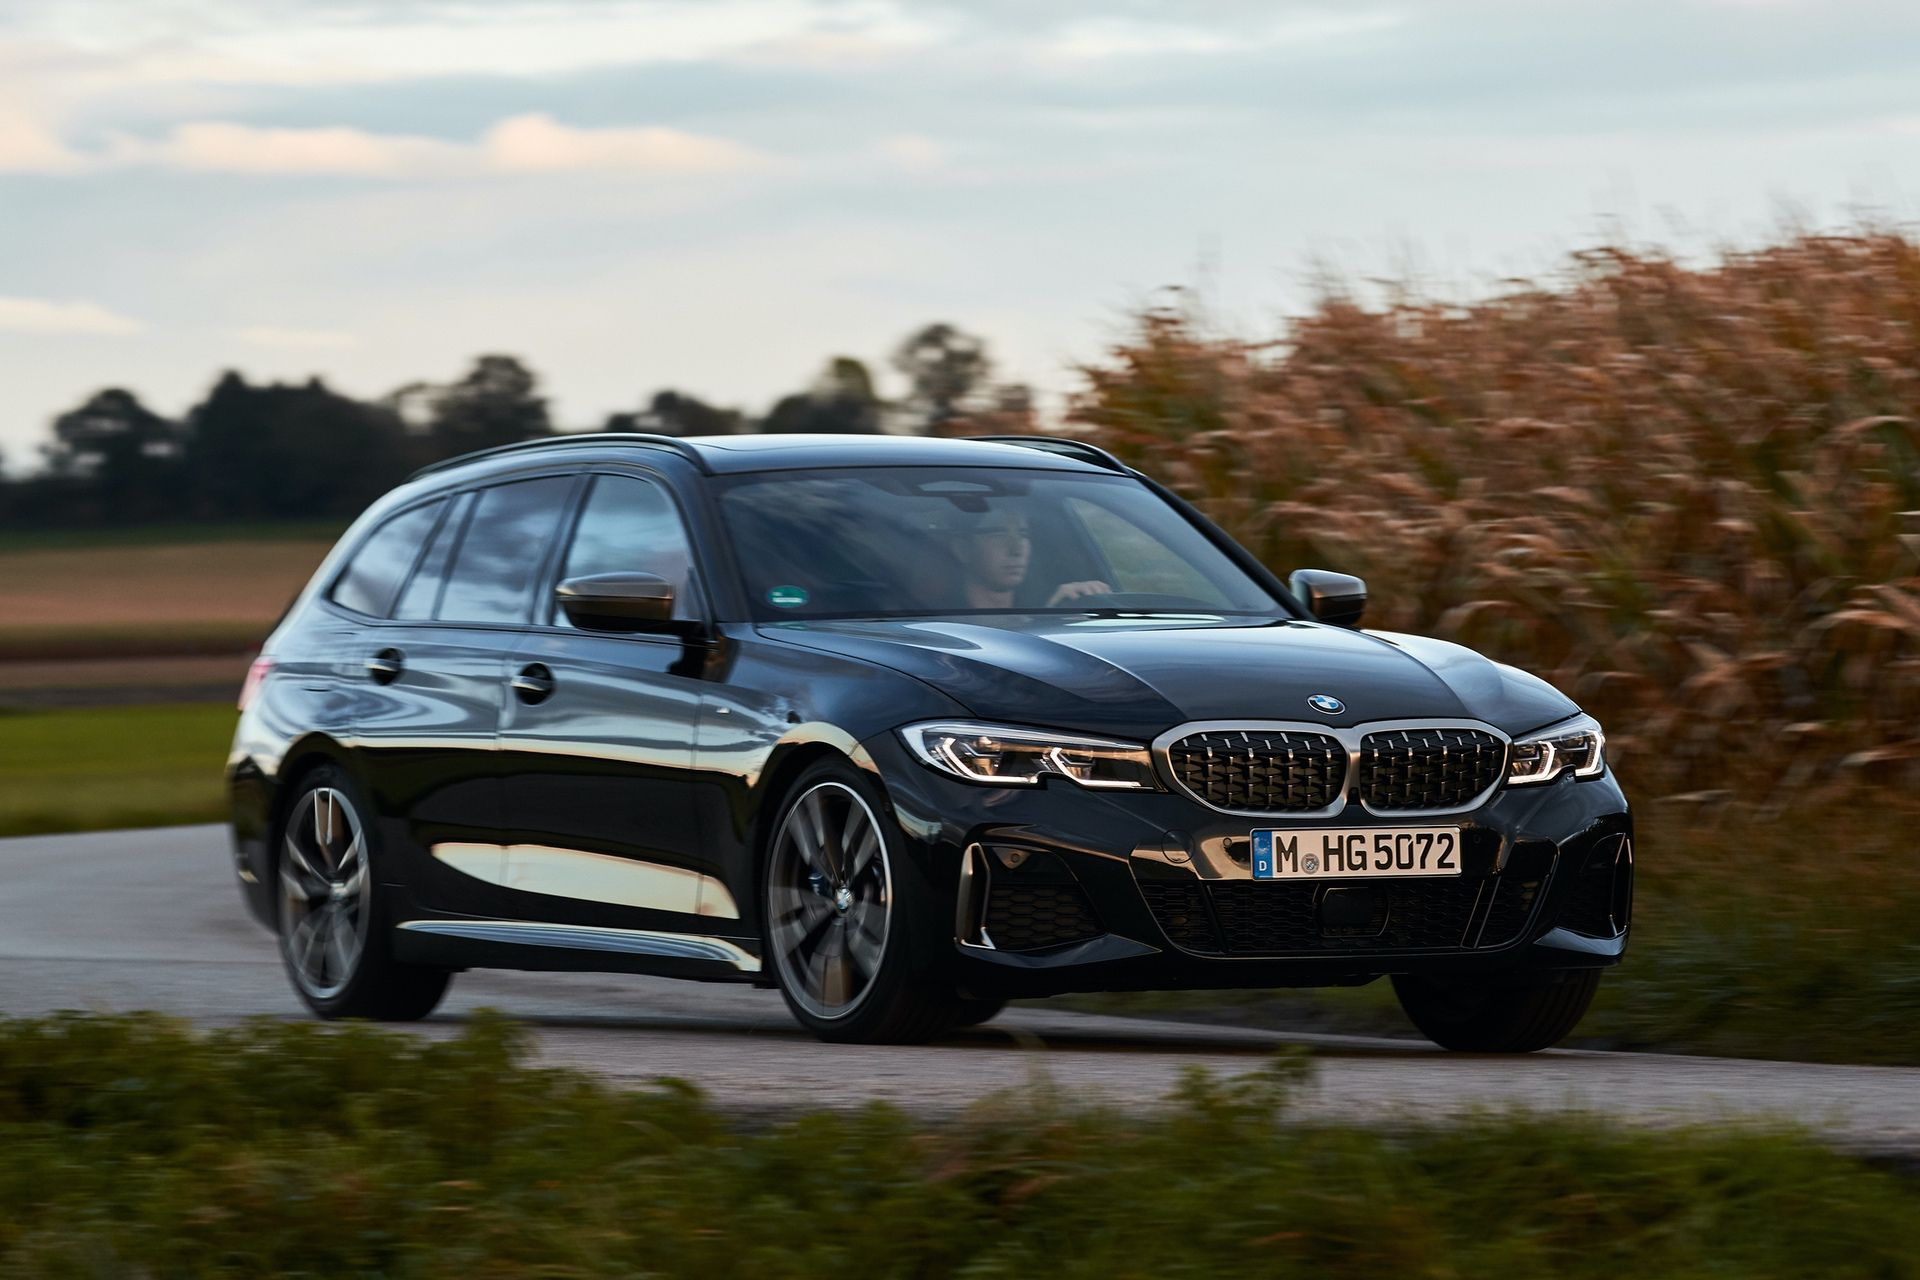 Meet One Of The Best Looking Cars Today The Bmw M340i Touring Bmw Good Looking Cars Bmw Touring